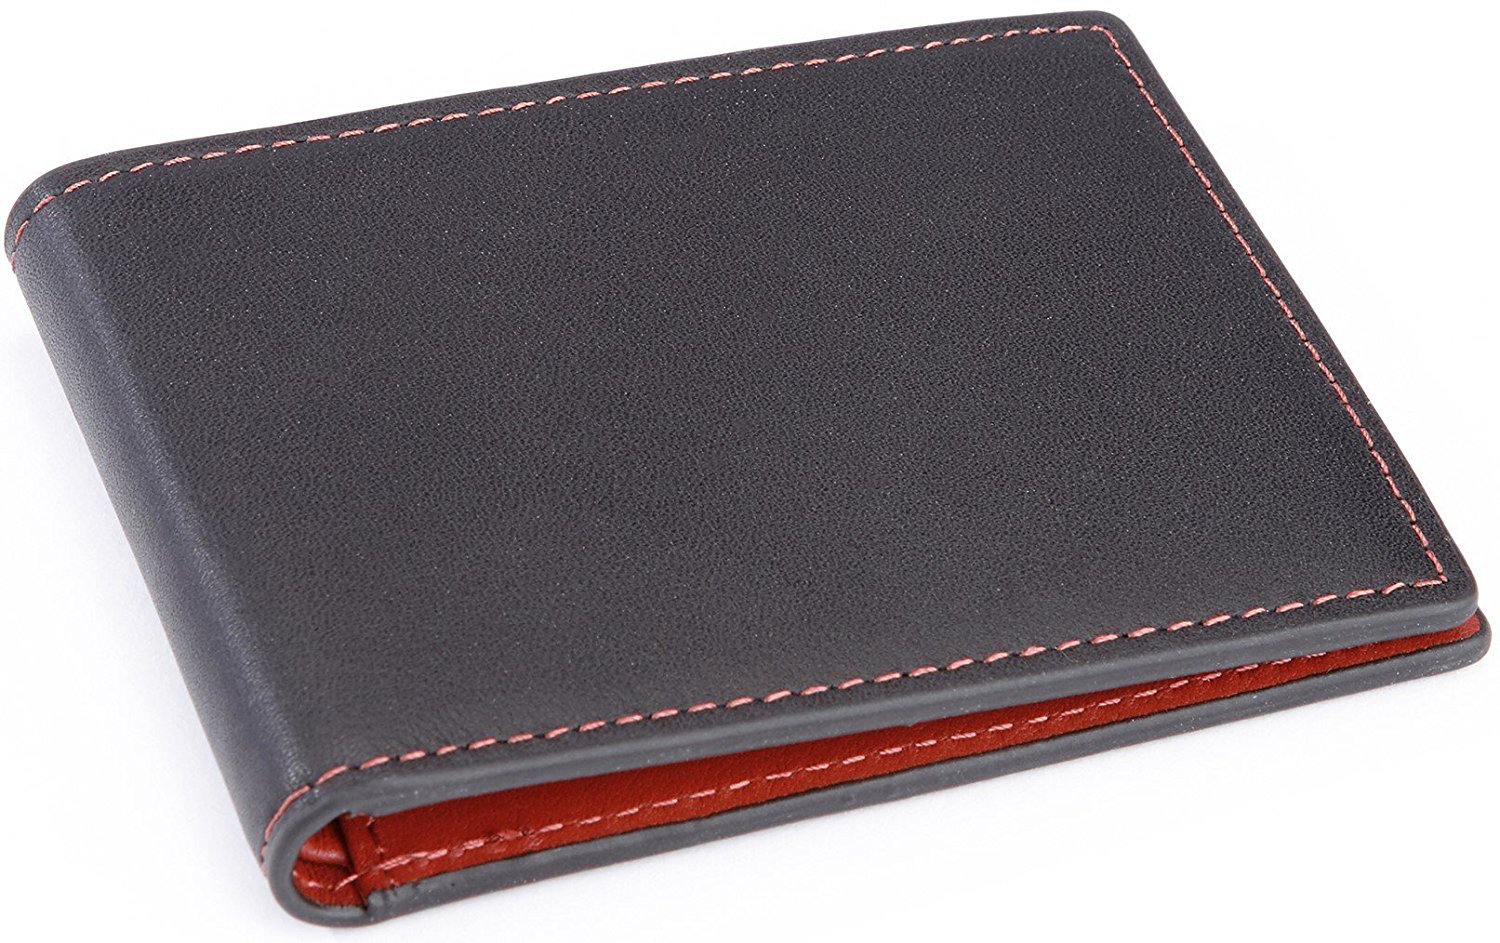 Royce Leather Men's 100 Step Slim Bifold Wallet Leather, Rfid Blocking Technology, Red